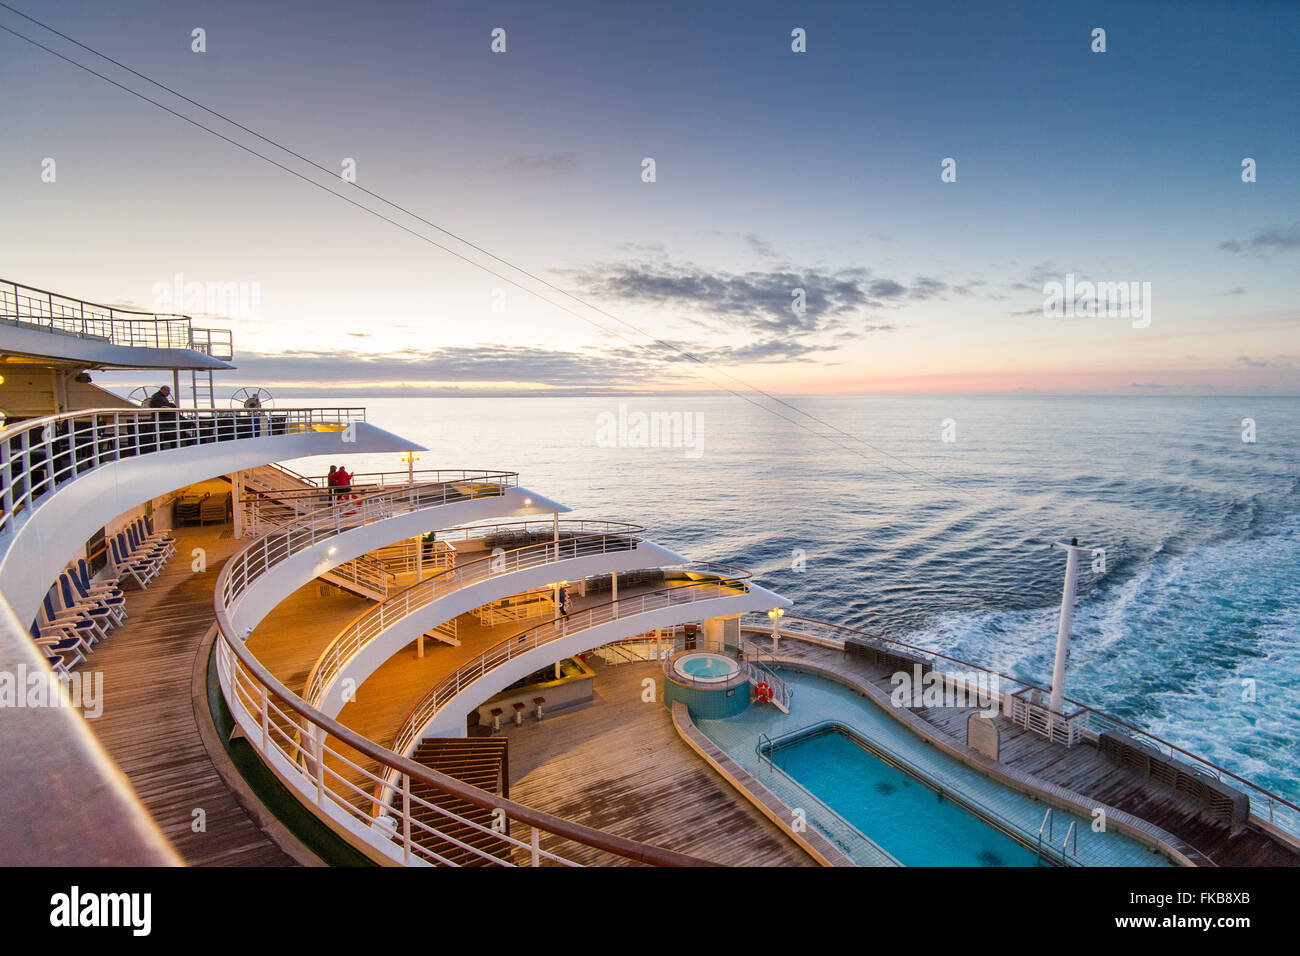 The aft (rear) open deck of P&O cruise ship Oriana in the North Sea, showing the heated Terrace Pool and surrounding Stock Photo